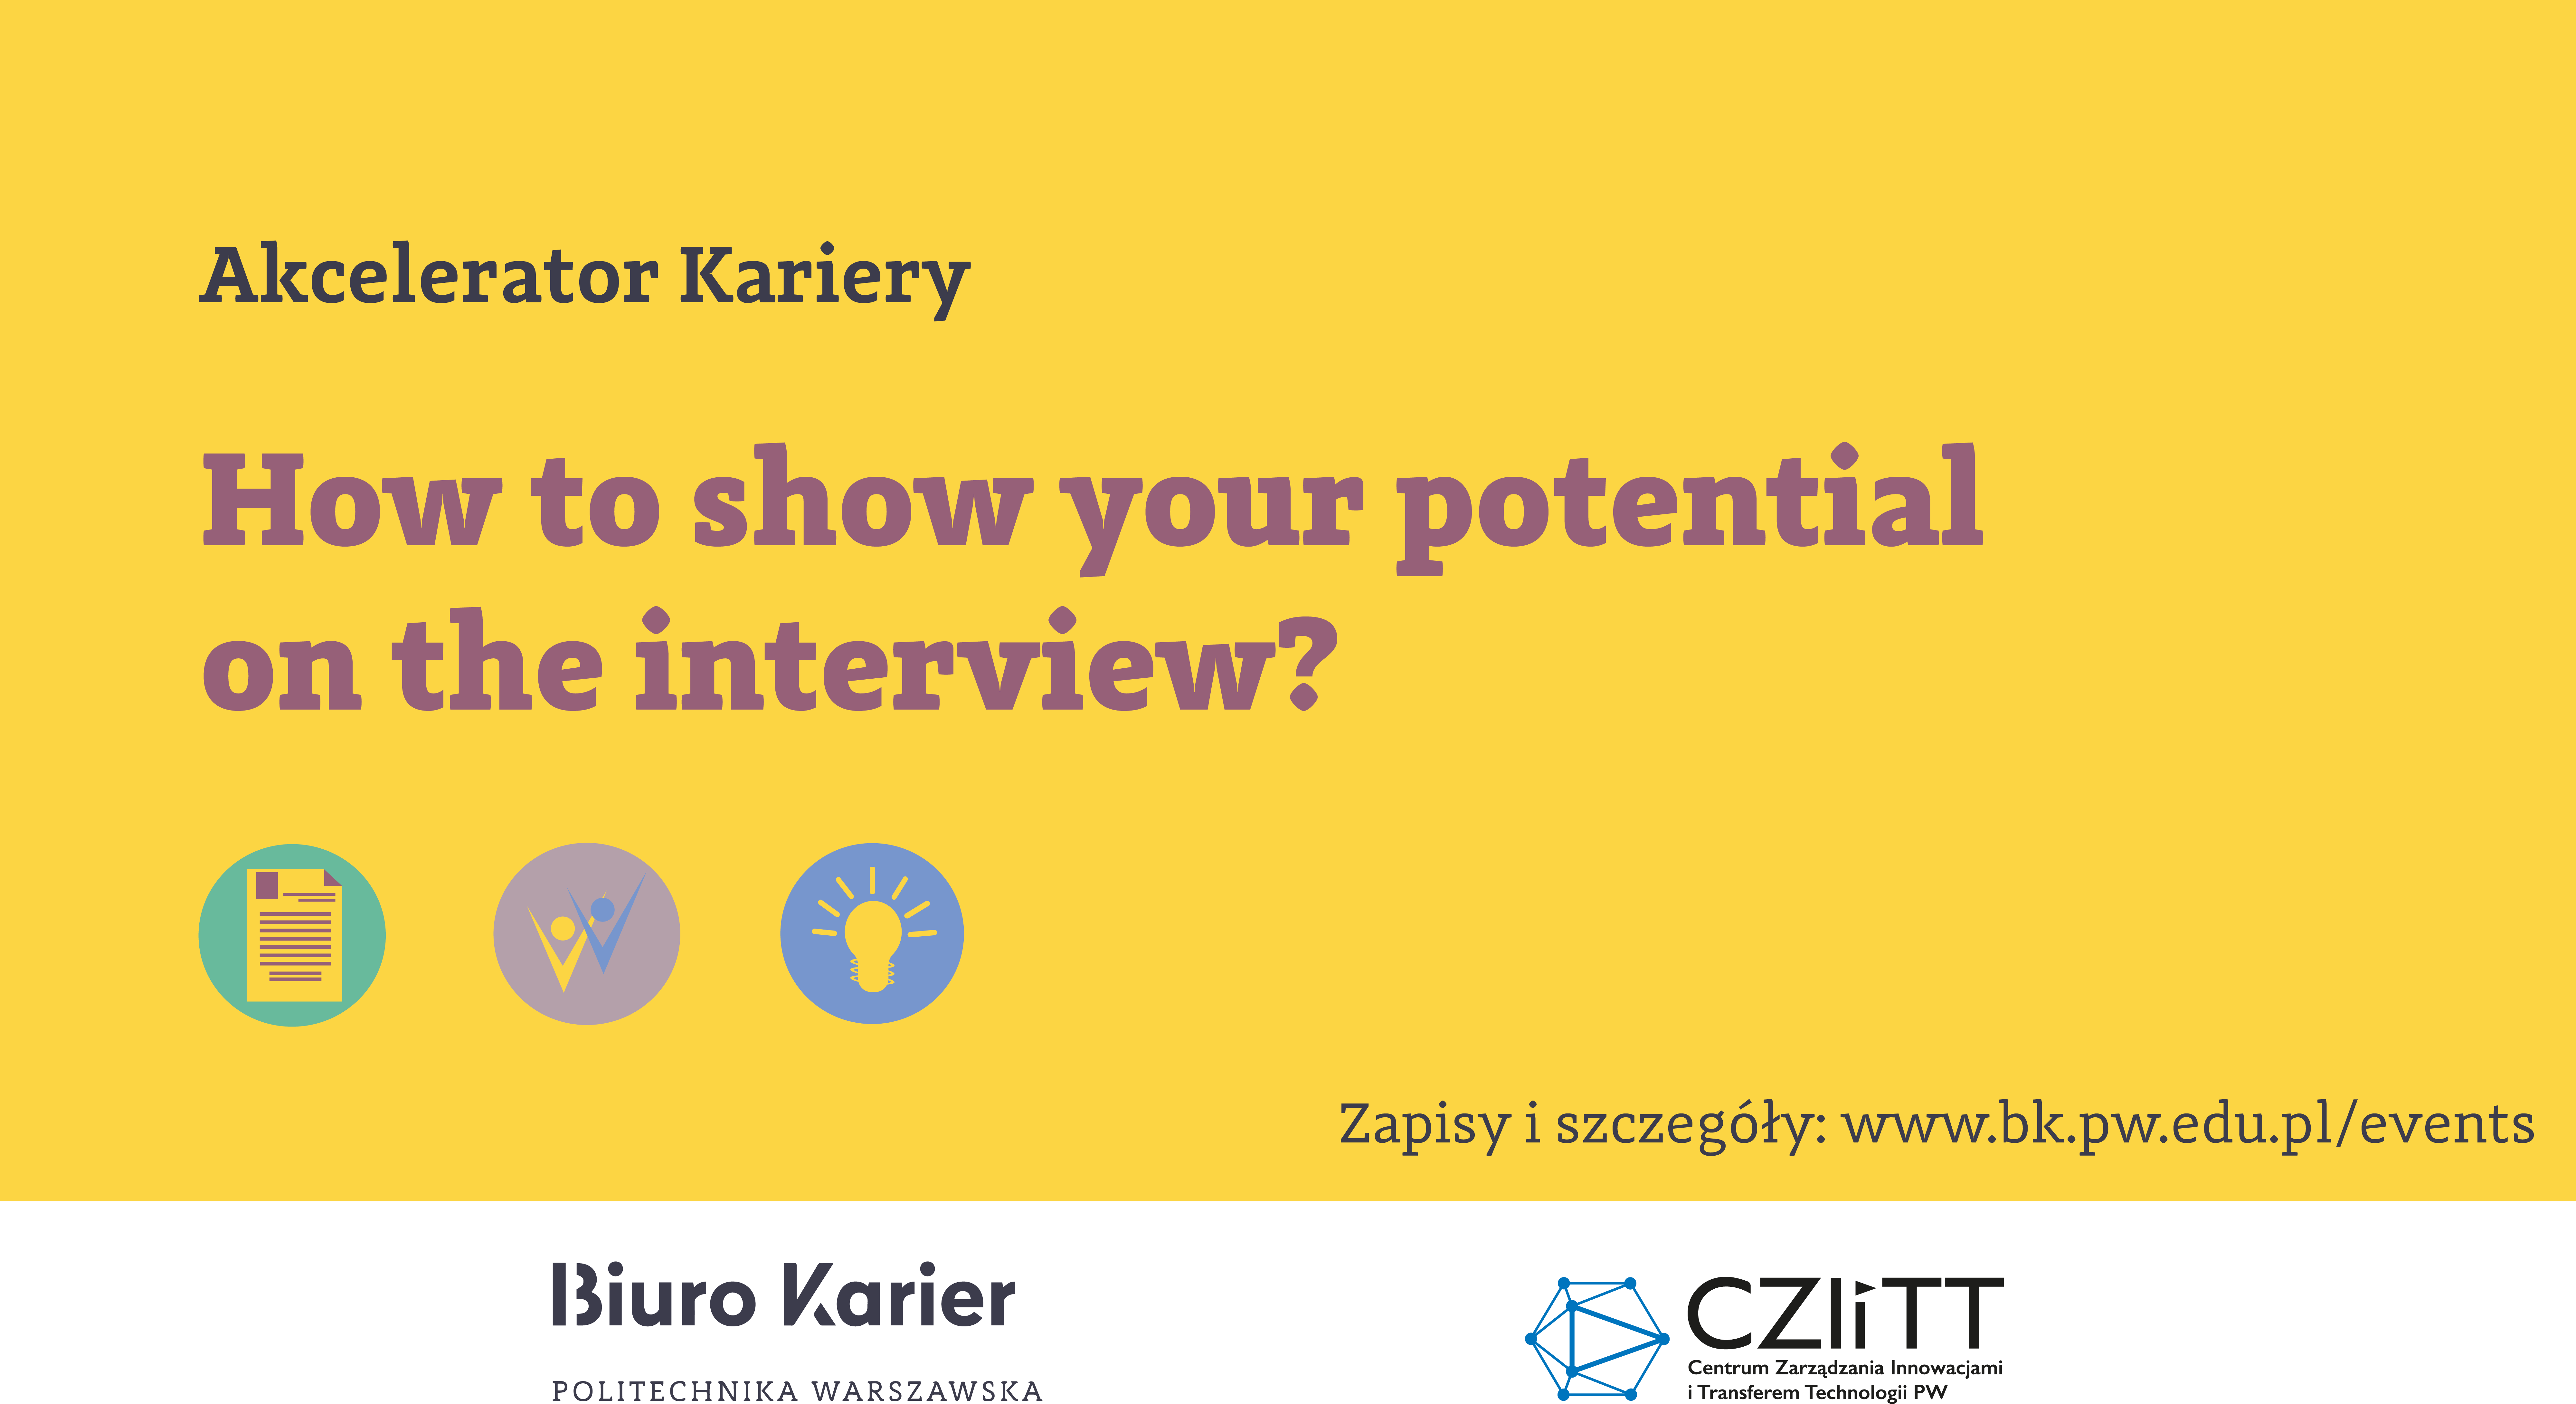 How to show your potential on the interview?